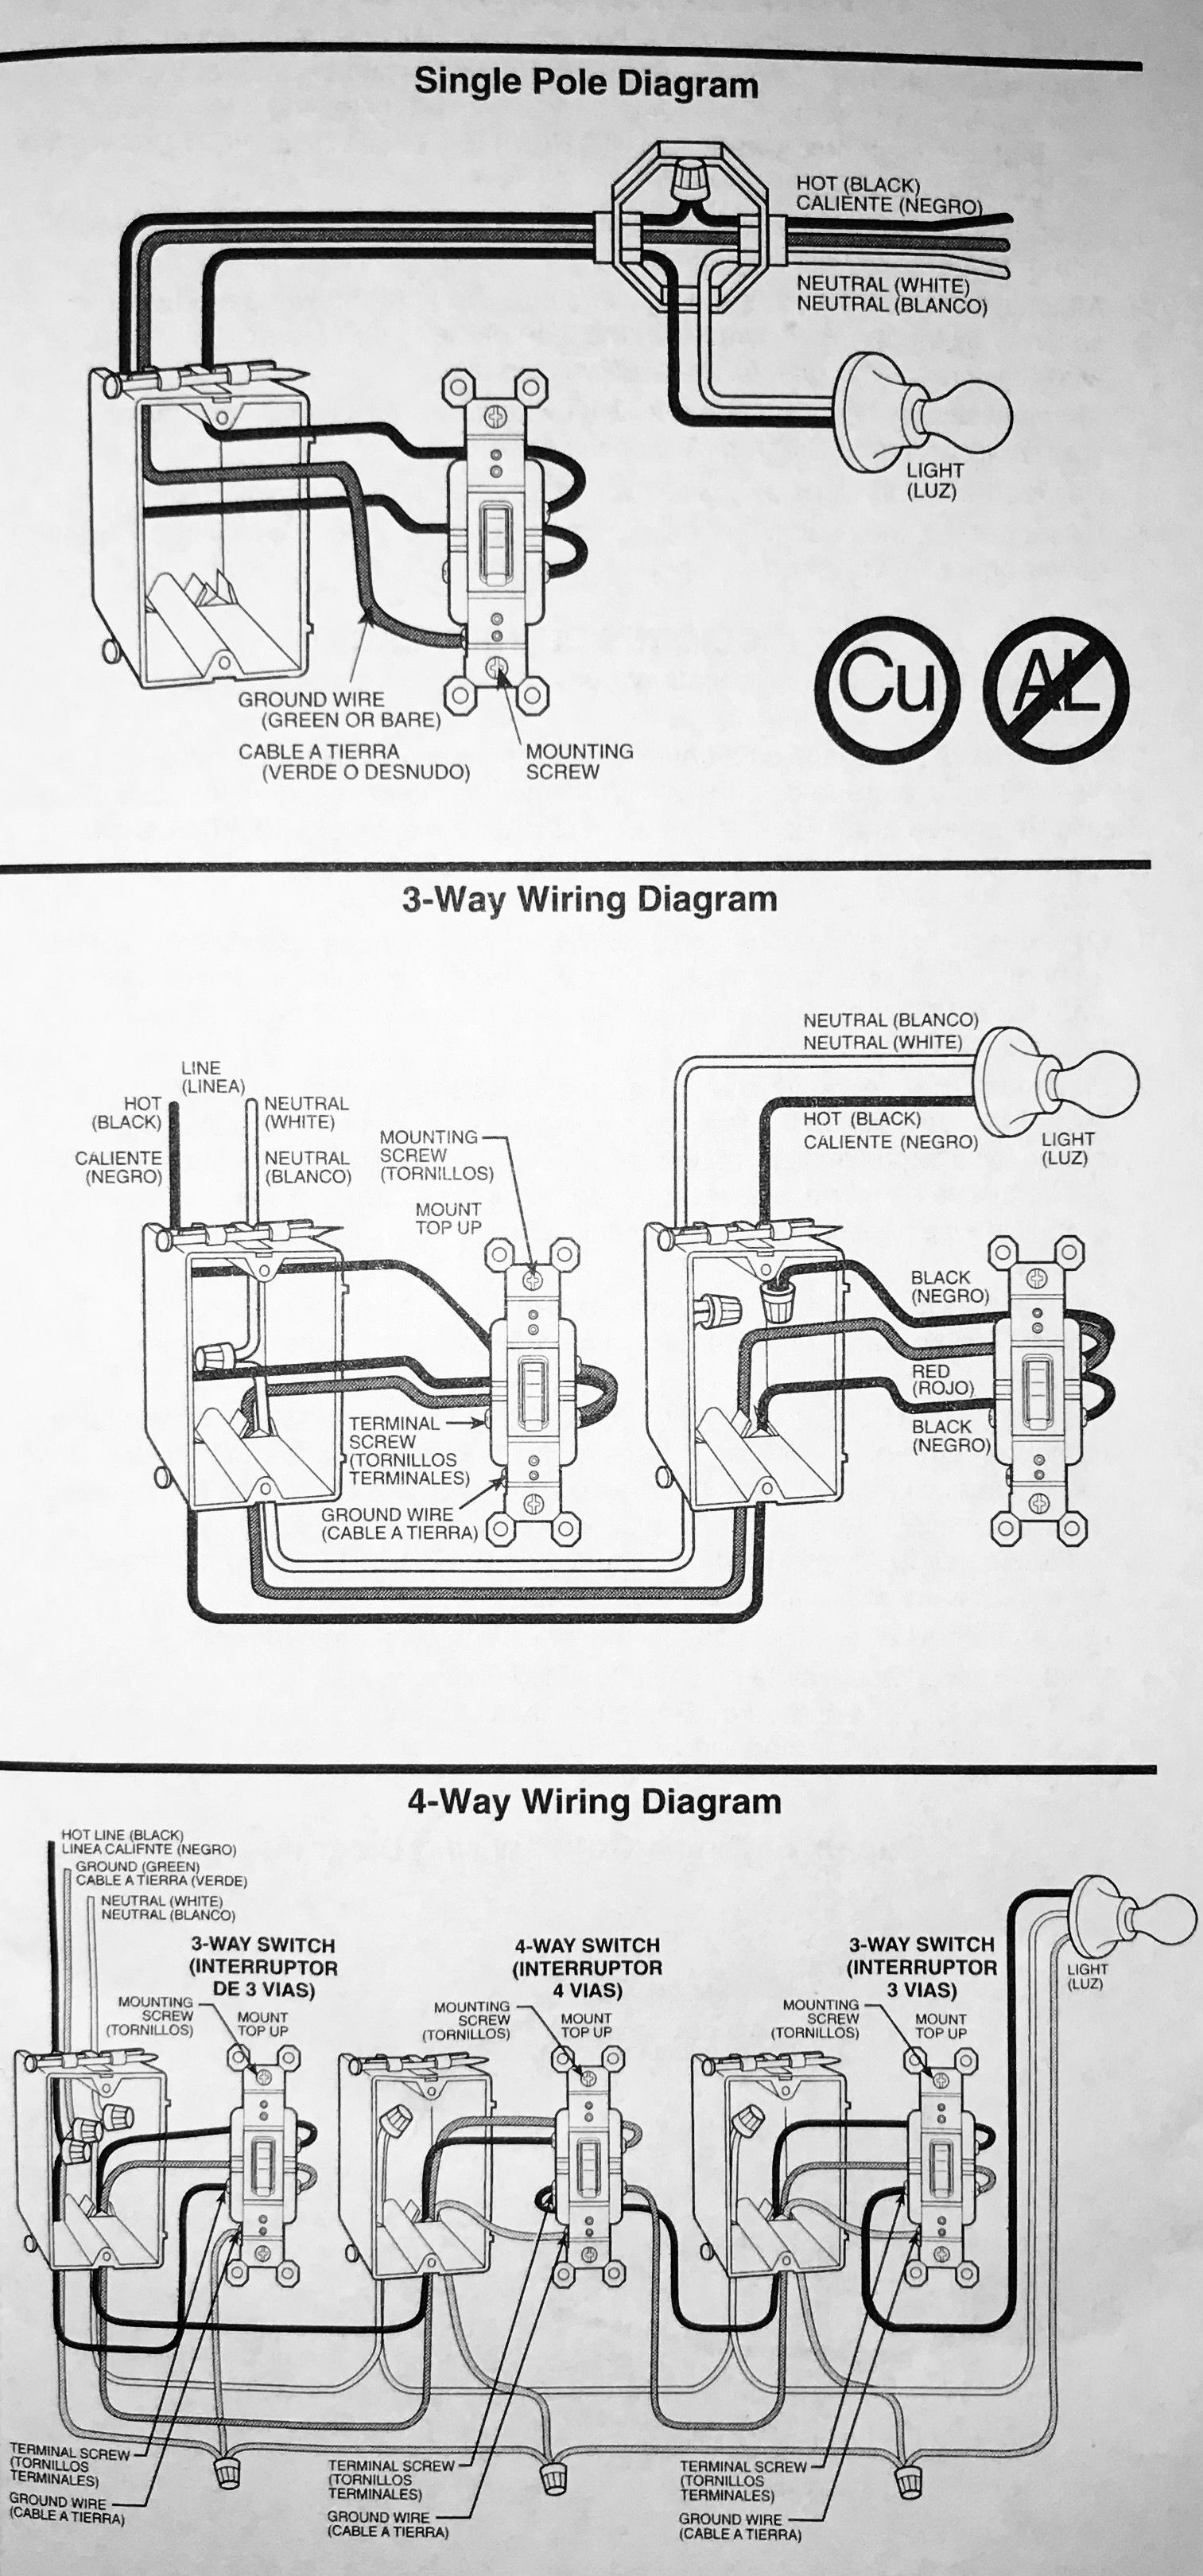 Wire Diagram For 3 Way Switch - List of Wiring Diagrams on